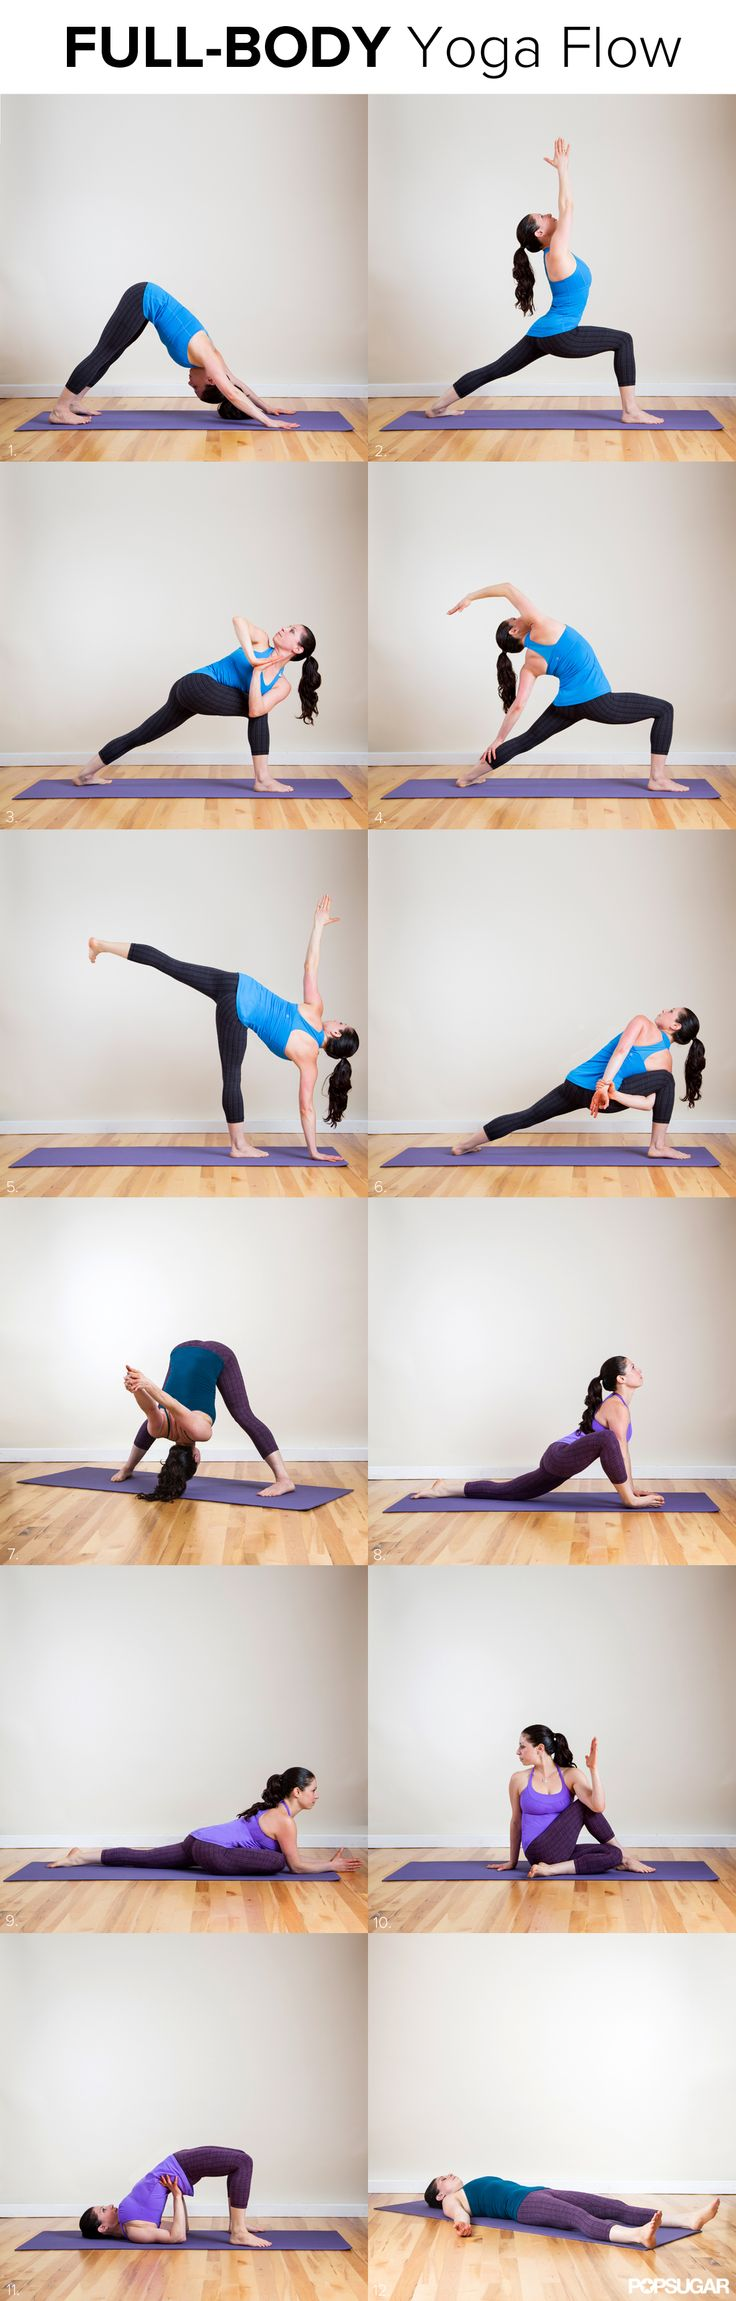 Great yoga sequence